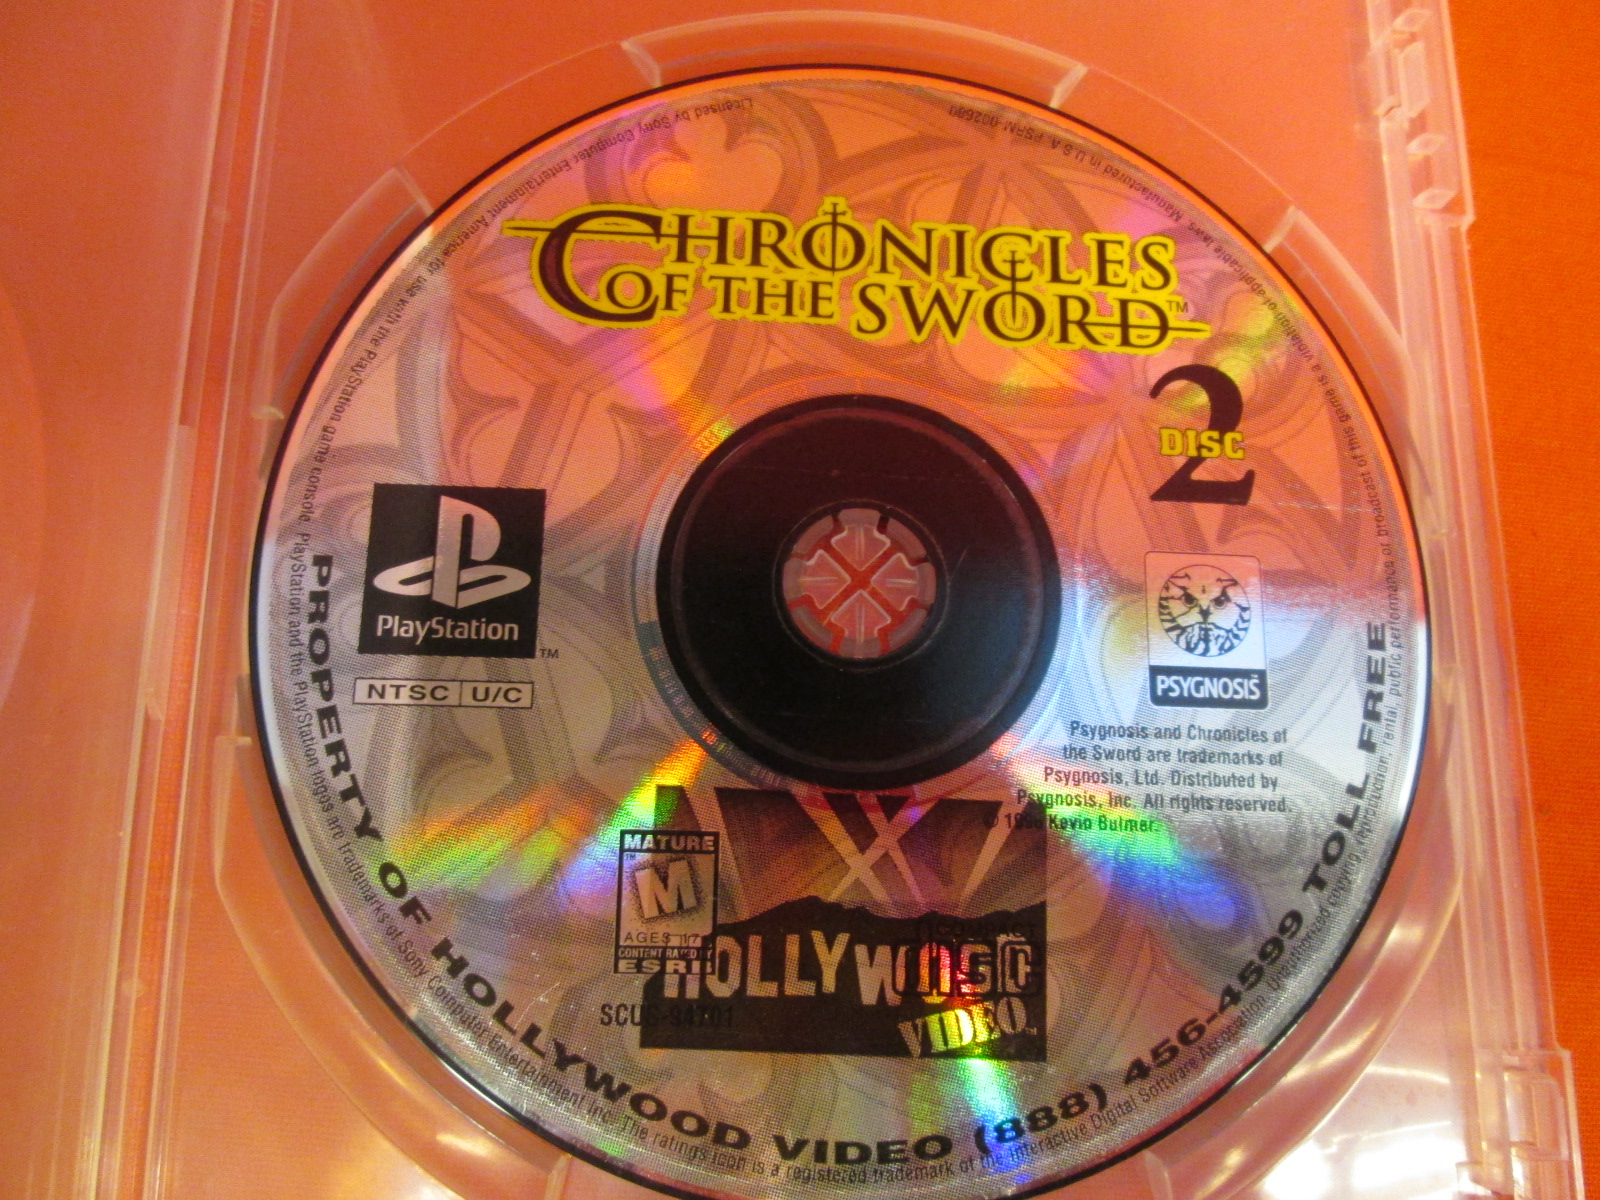 Replacement Disc 2 For Chronicles Of The Sword For PlayStation 1